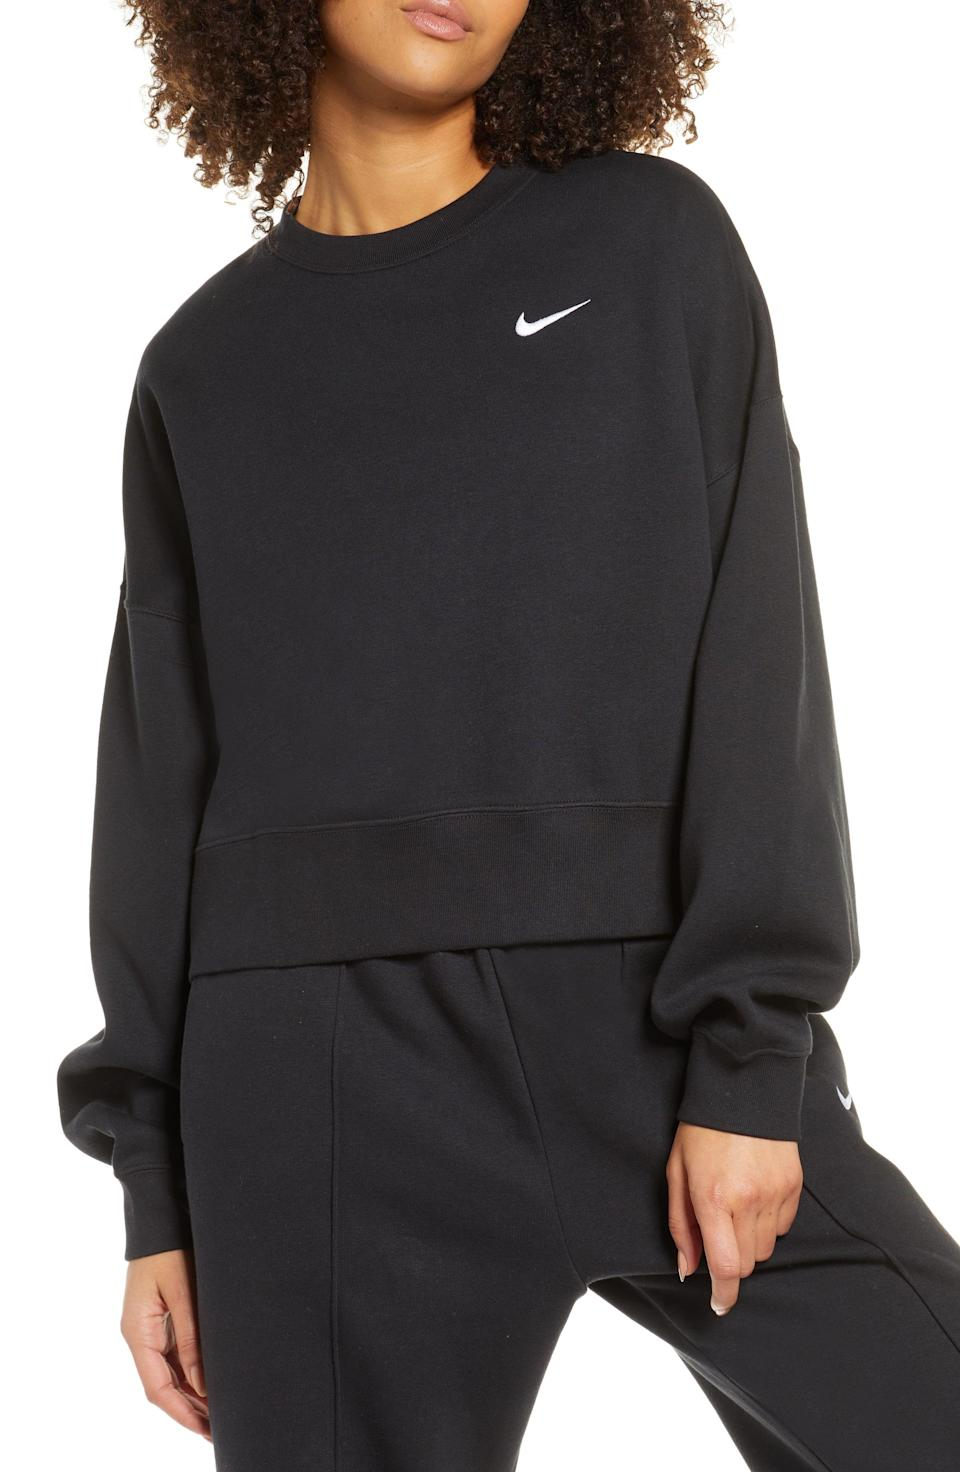 """<p><strong>NIKE</strong></p><p>nordstrom.com</p><p><a href=""""https://go.redirectingat.com?id=74968X1596630&url=https%3A%2F%2Fshop.nordstrom.com%2Fs%2Fnike-sportswear-crewneck-sweatshirt%2F5369432&sref=https%3A%2F%2Fwww.cosmopolitan.com%2Fstyle-beauty%2Ffashion%2Fg33597174%2Fnordstrom-anniversary-sale-2020%2F"""" rel=""""nofollow noopener"""" target=""""_blank"""" data-ylk=""""slk:Shop Now"""" class=""""link rapid-noclick-resp"""">Shop Now</a></p><p>If I could have Nike everything in my life rn, I would. But I'll just start with this discounted sweatshirt for now.</p><p><strong>Add to cart to see the special price.</strong></p>"""